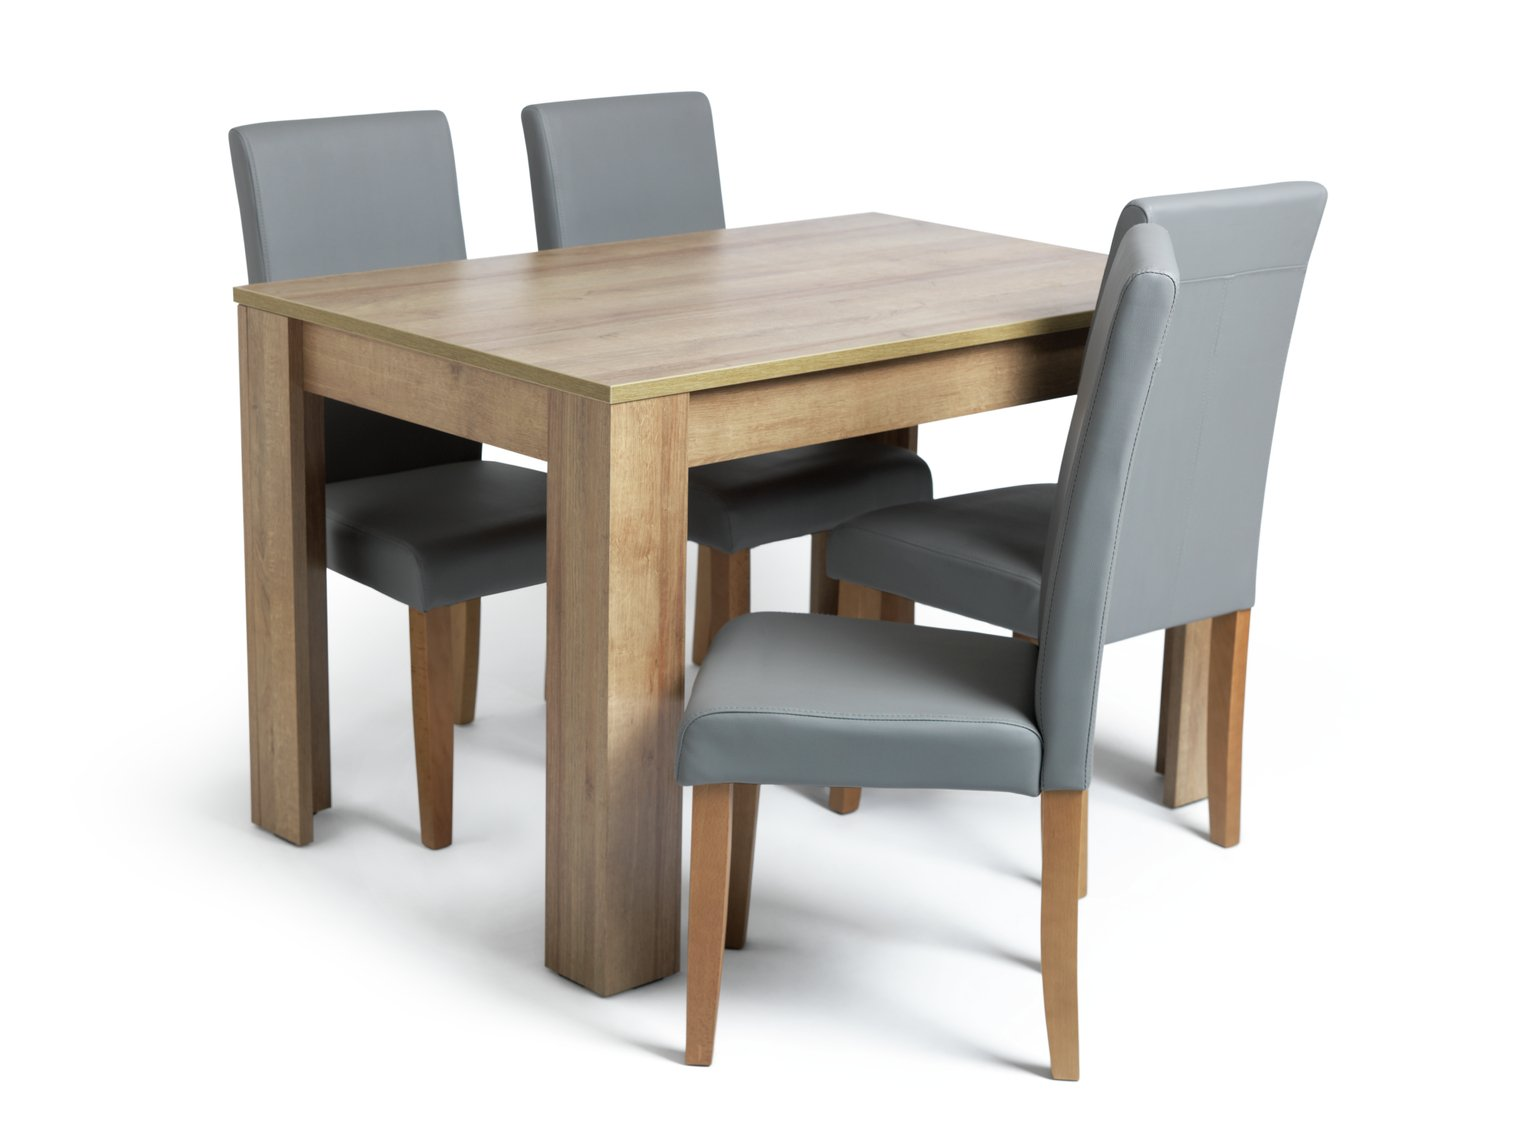 Argos Home Miami Oak Effect Dining Table & 4 Grey Chairs